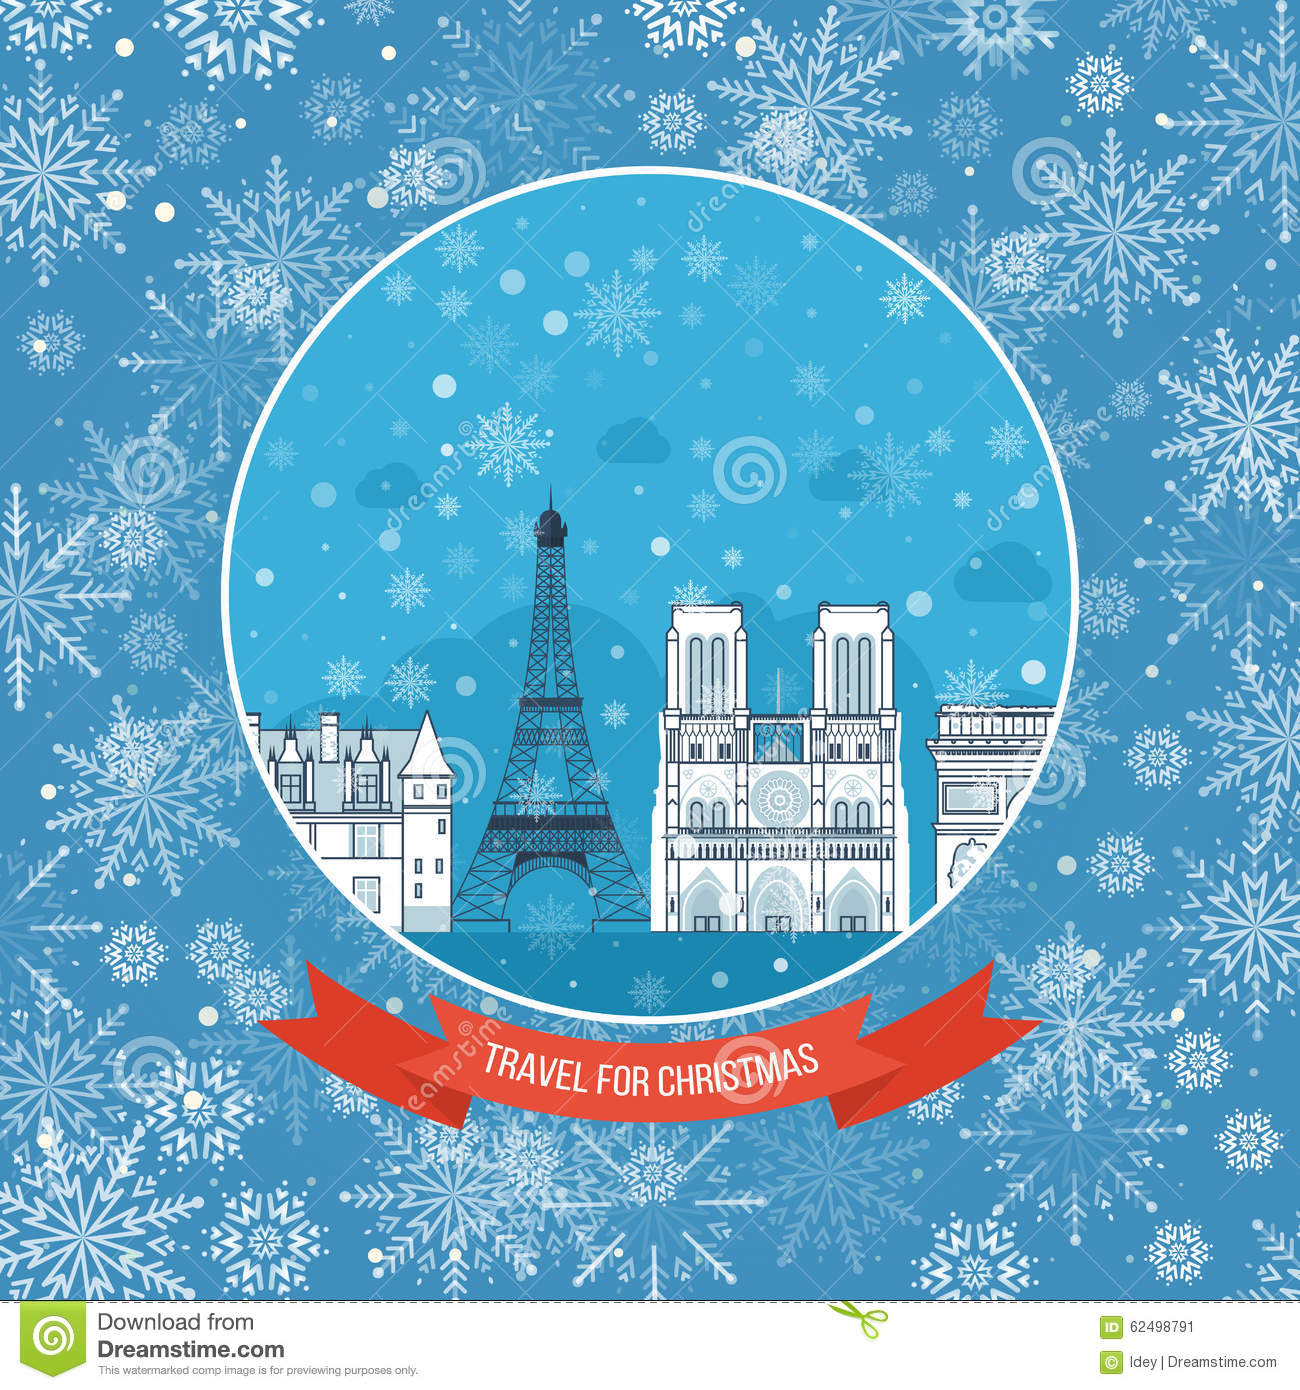 Easy Year To Travel On Christmas: Travel To France For Christmas. Greeting Card Stock Vector